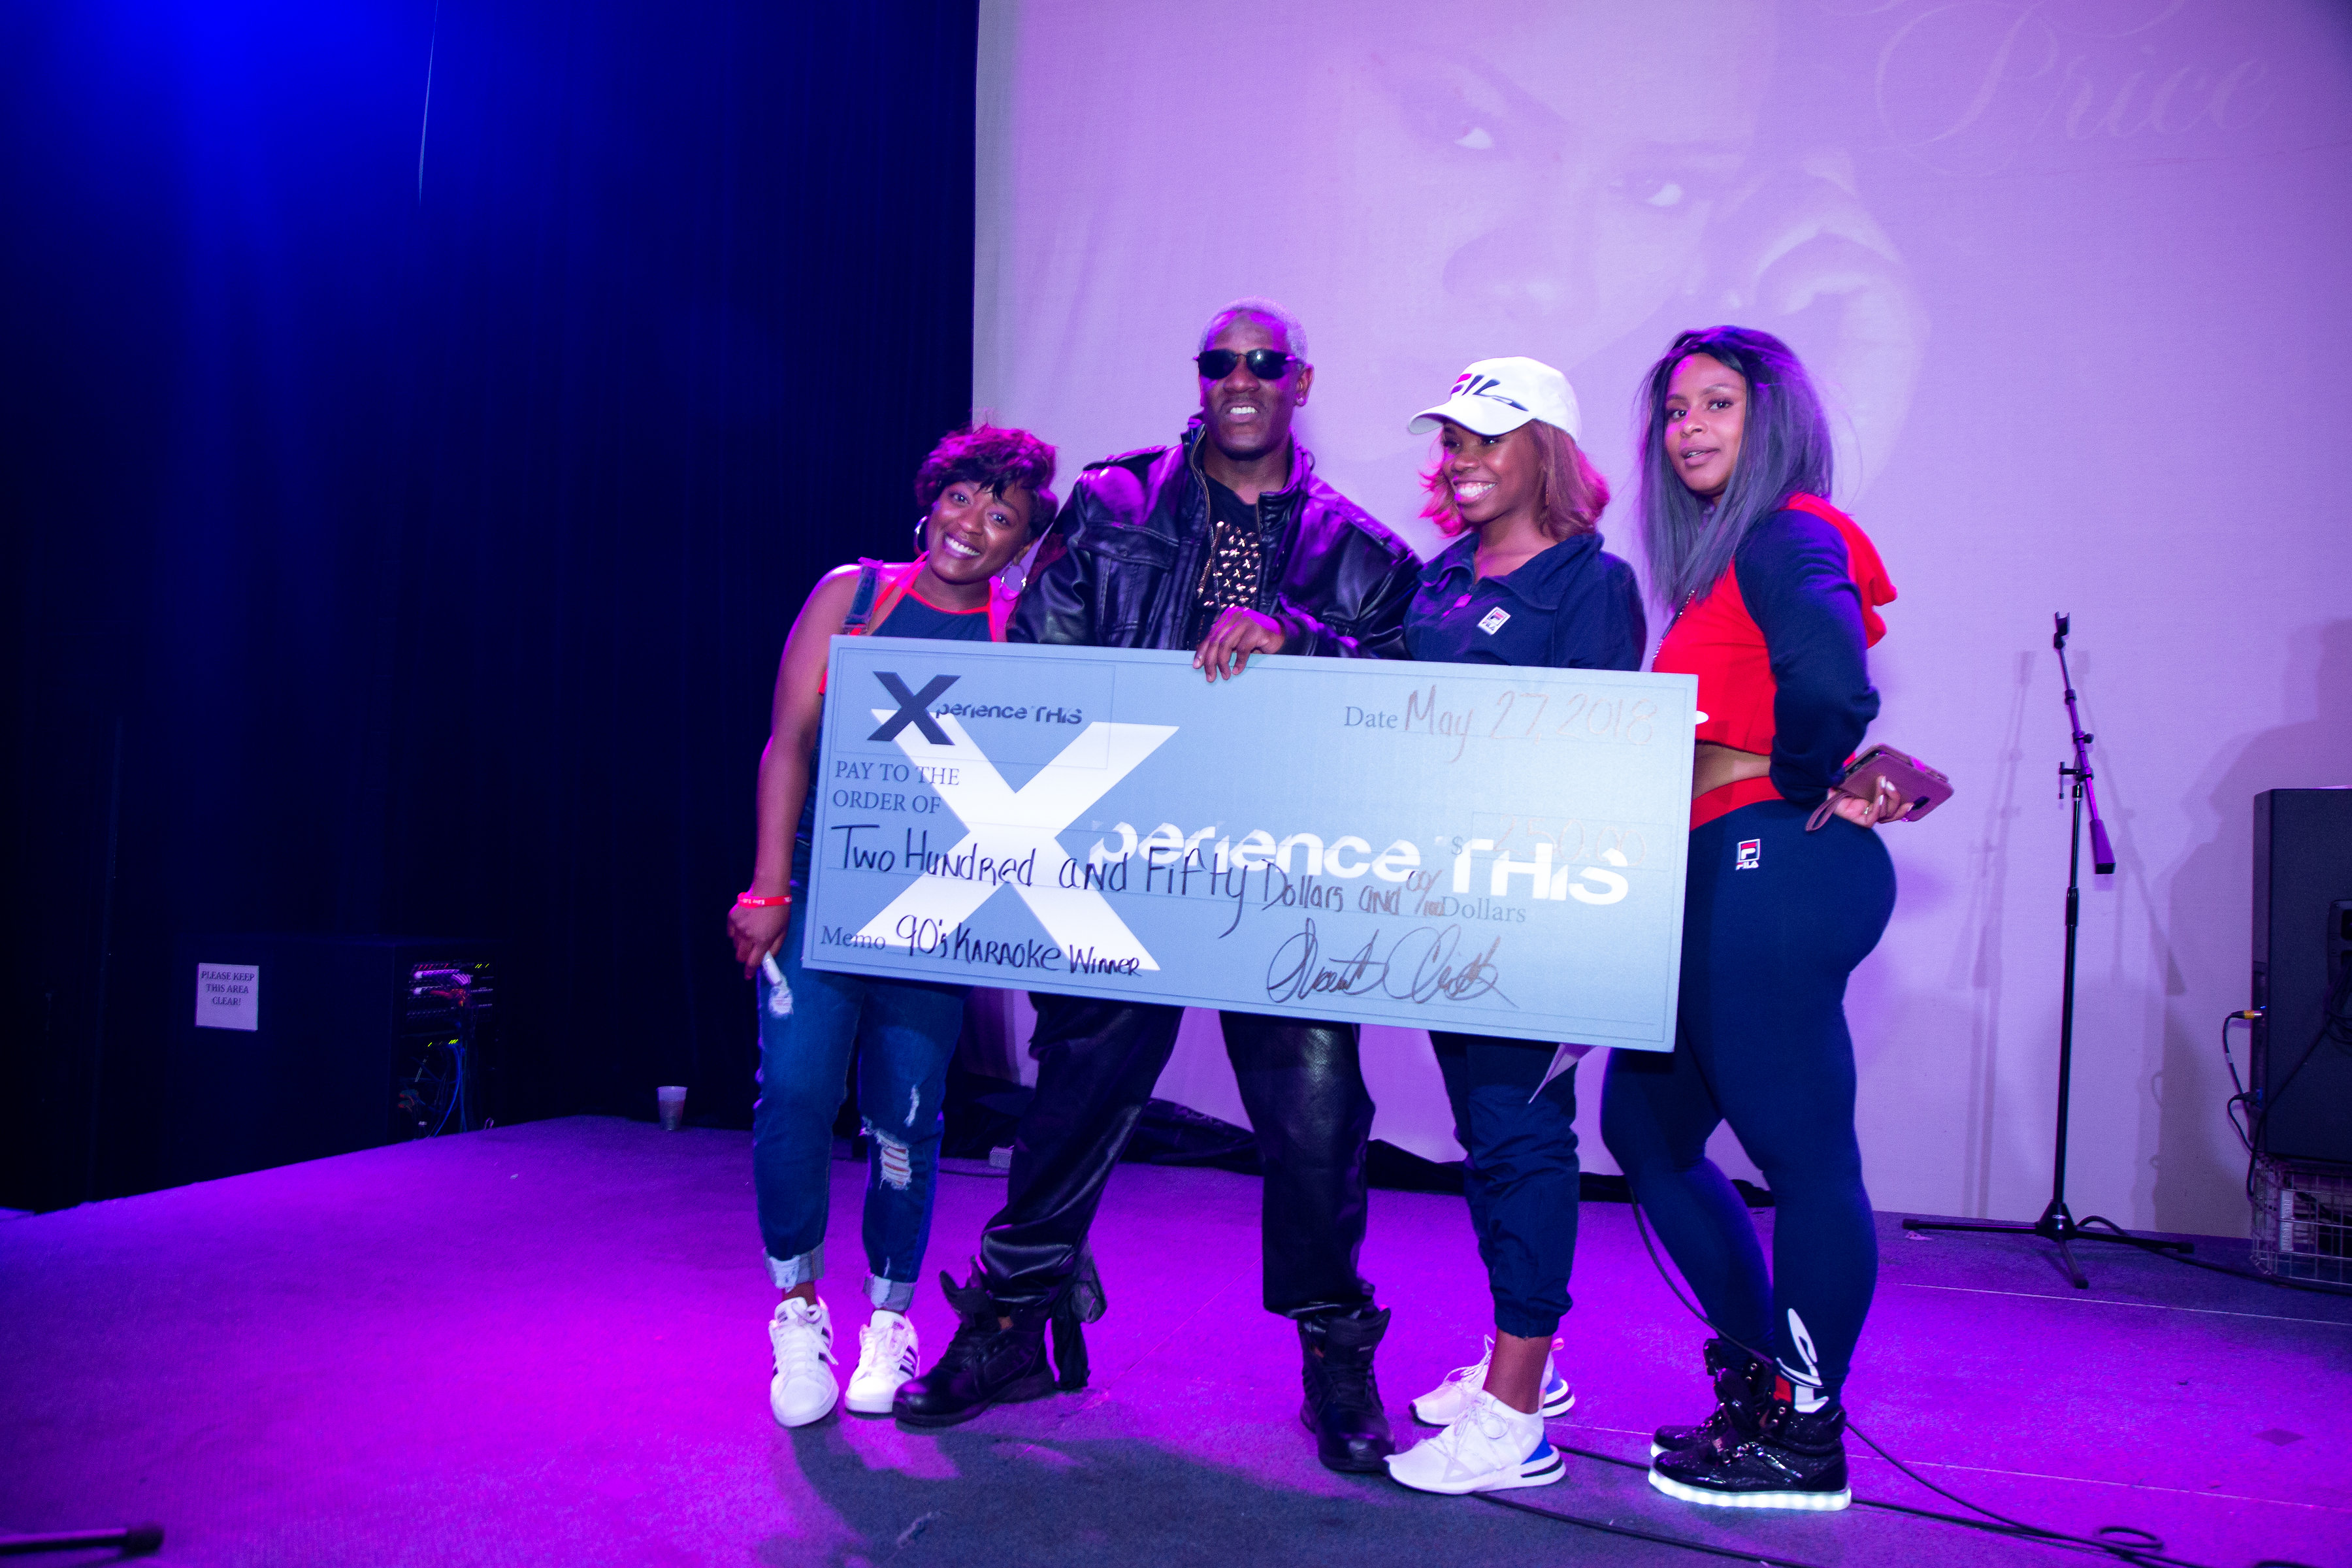 Xperience This poses with winner of check